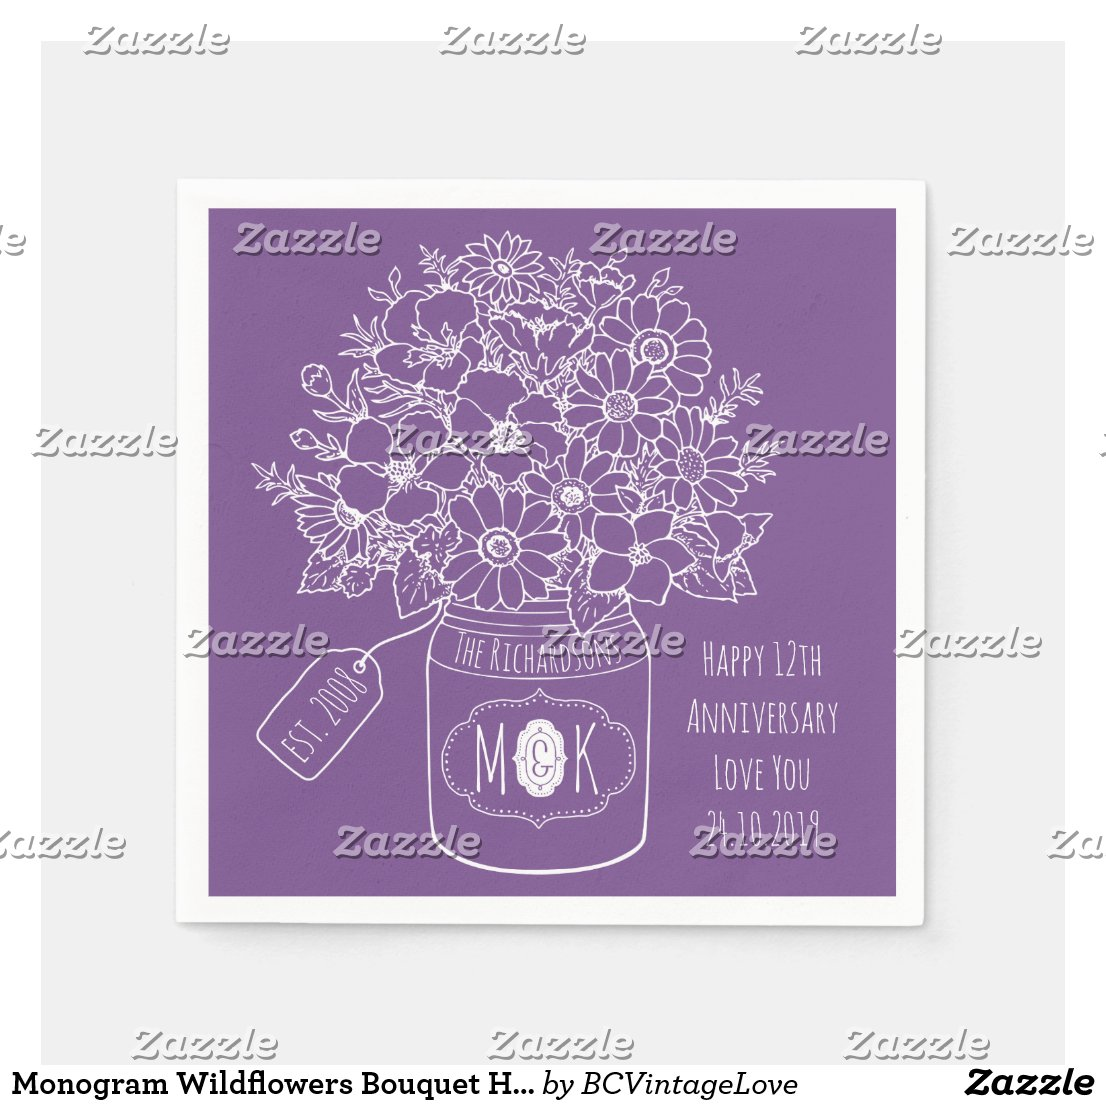 Monogram Wildflowers Bouquet Hand-Drawn Mason Jar Napkin